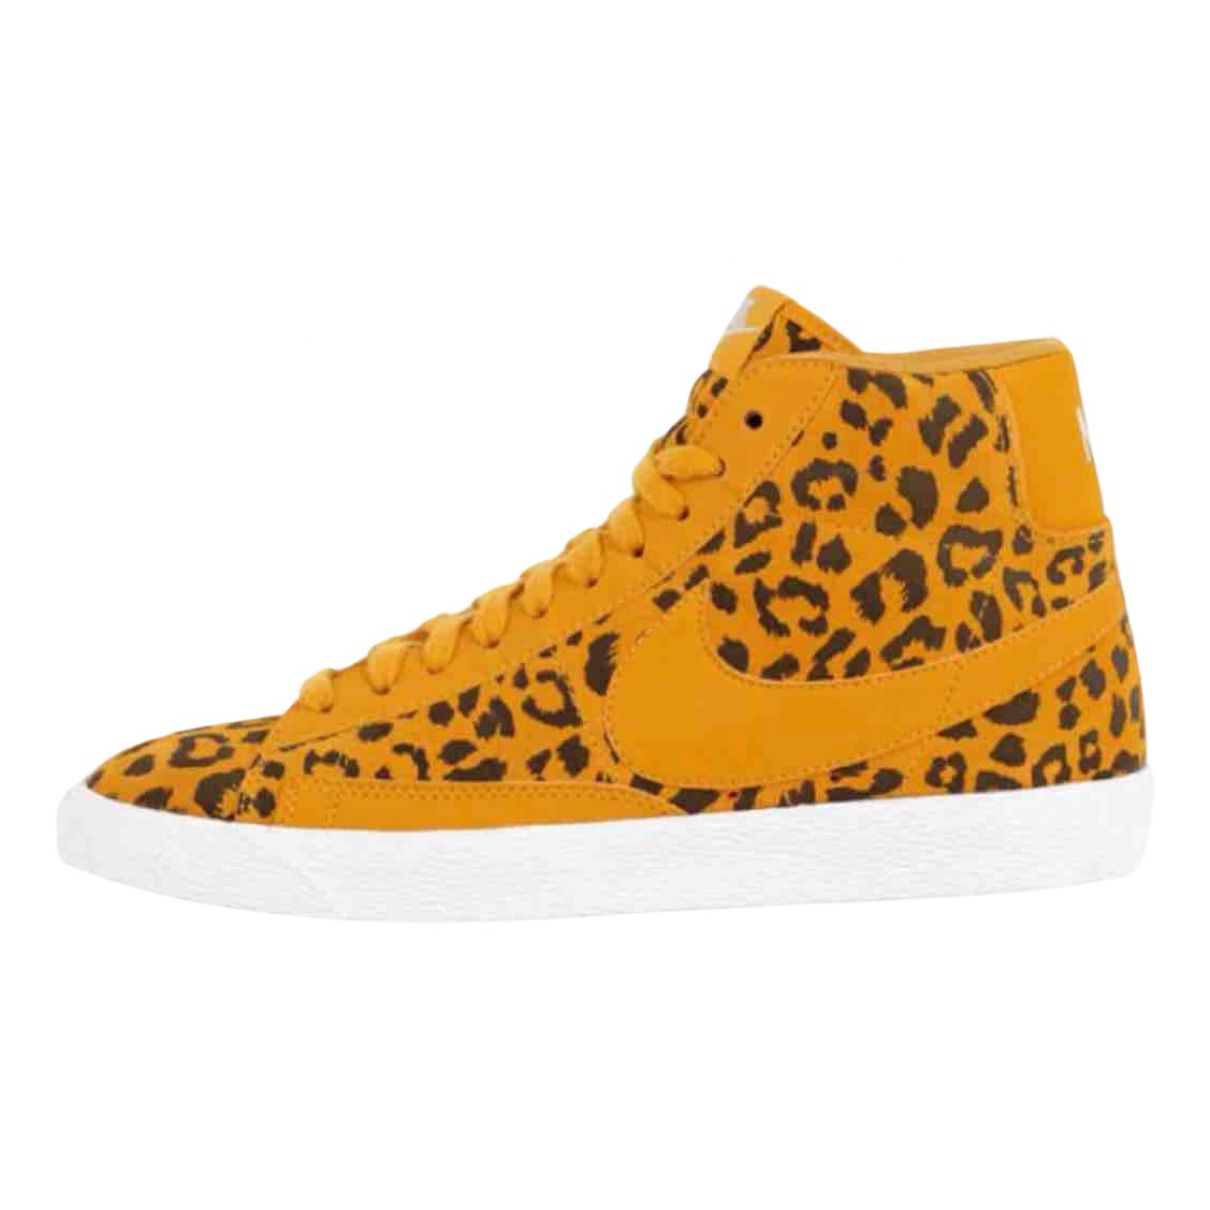 Nike Blazer Multicolour Leather Trainers for Women 38 EU